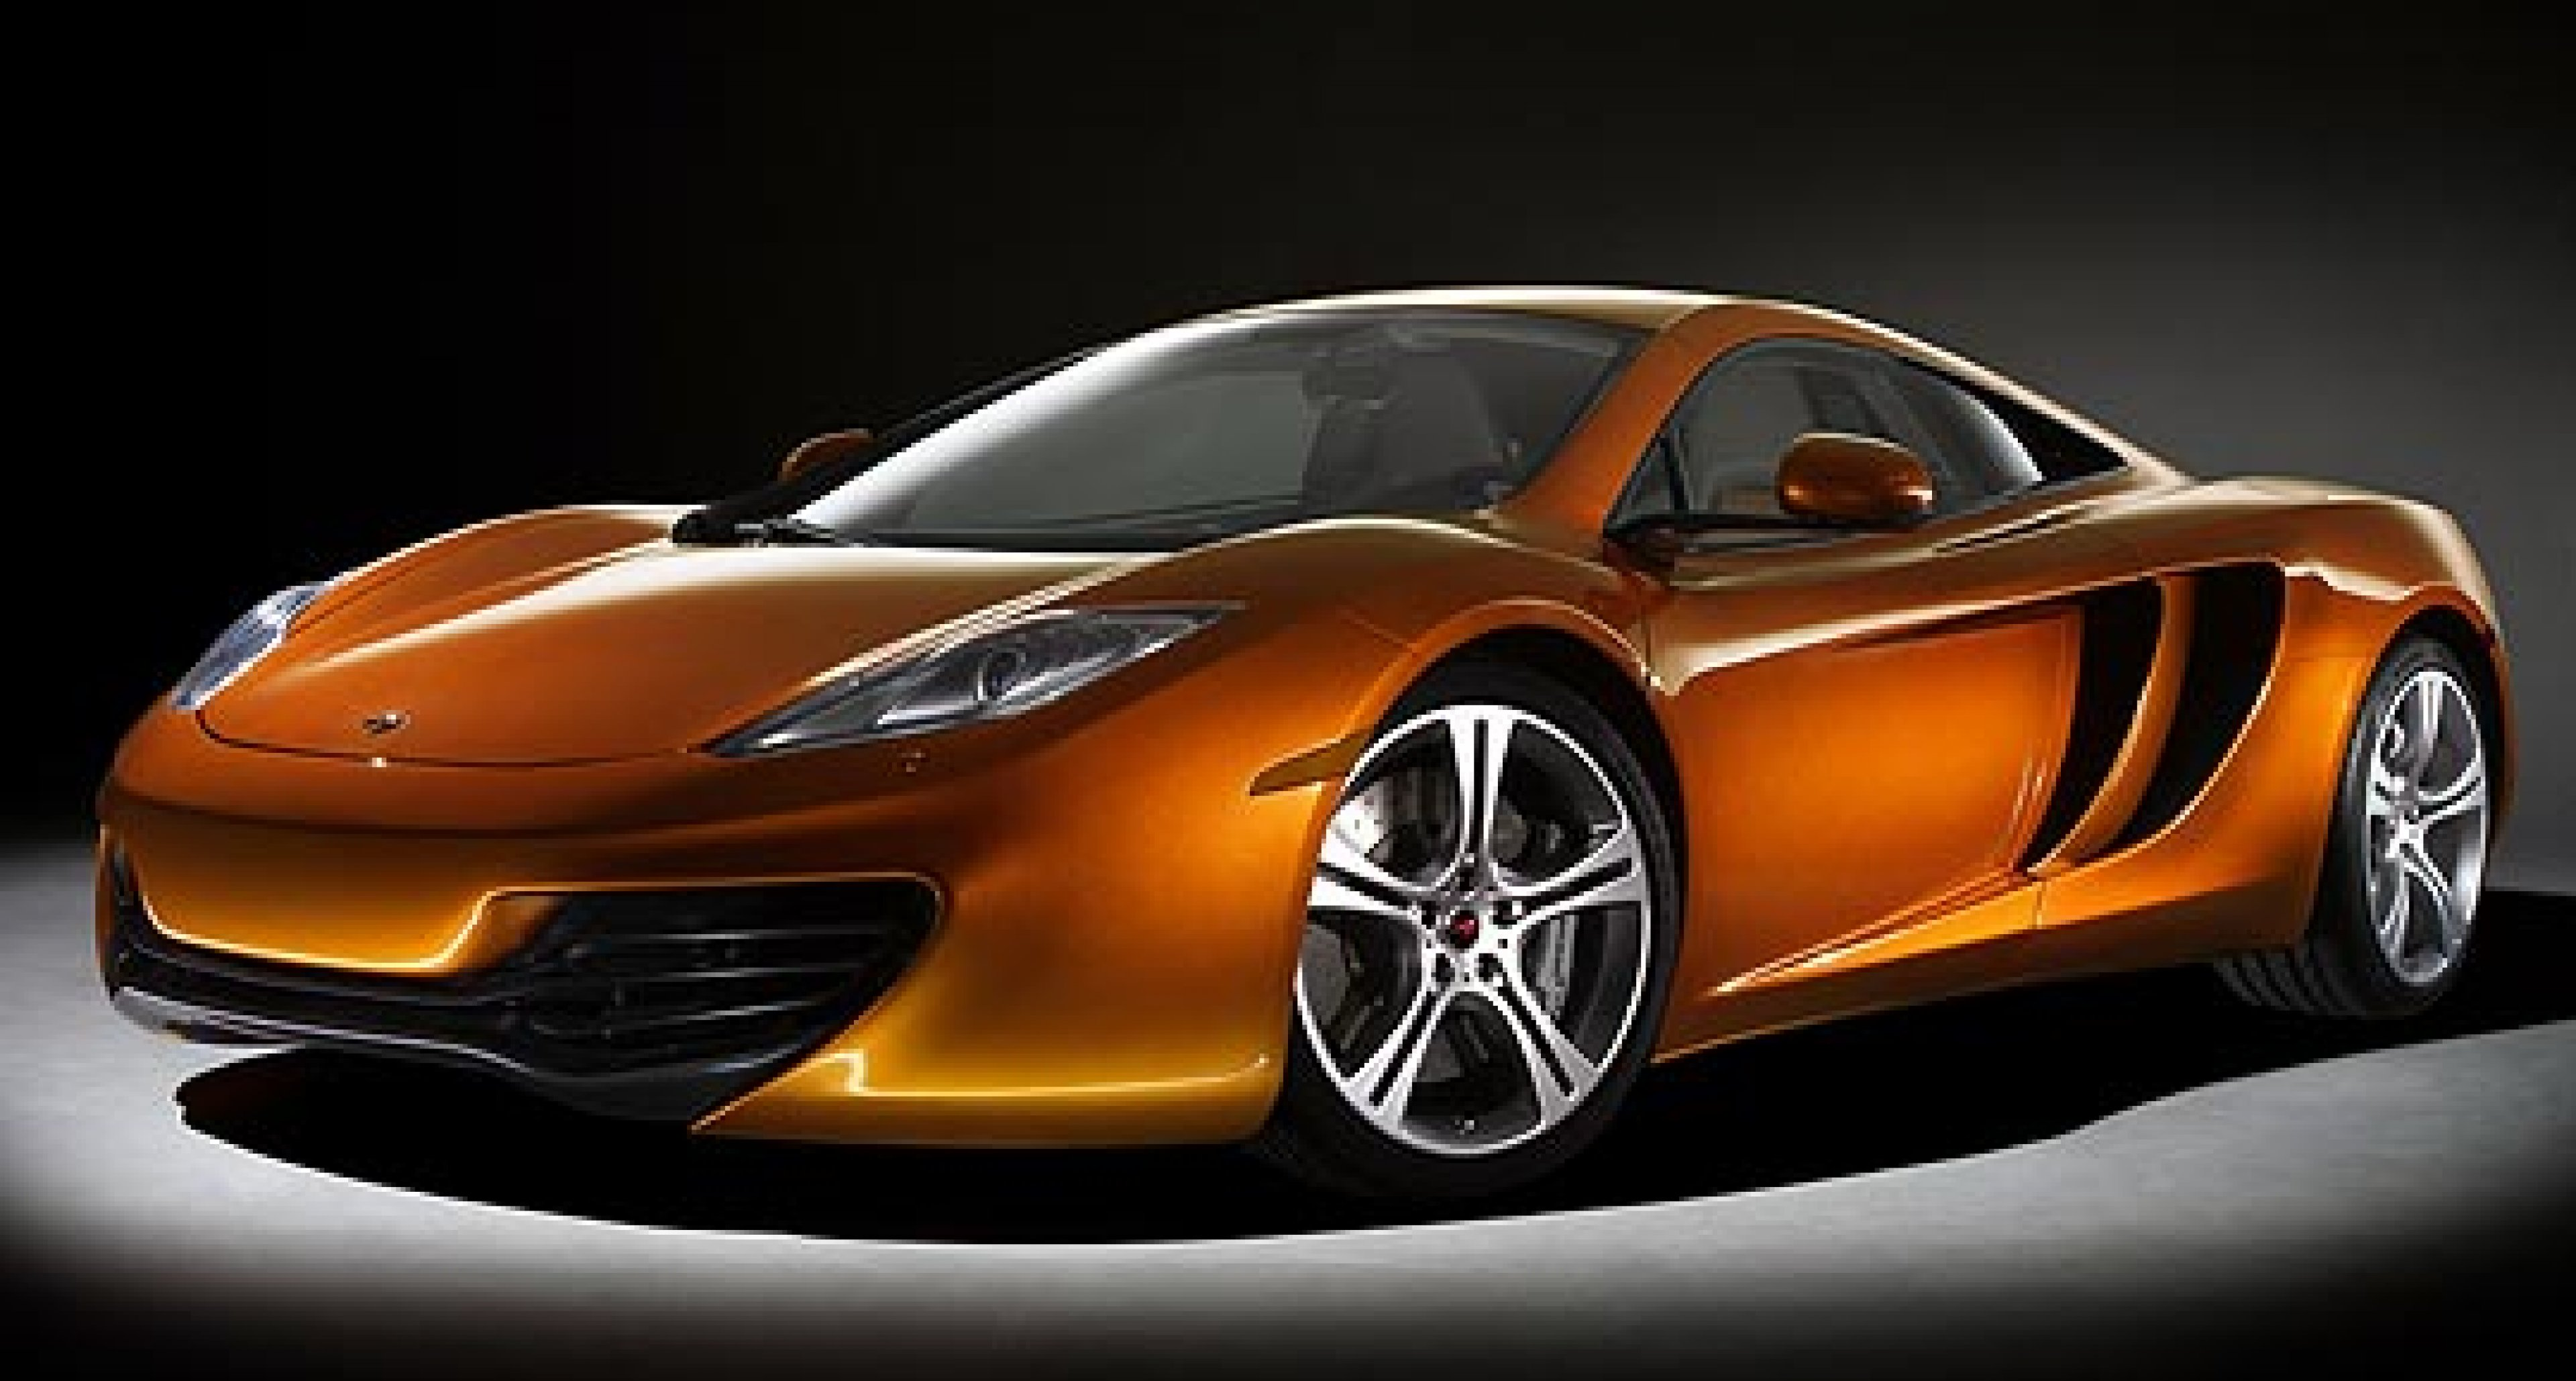 McLaren MP4-12C - Design Analysis